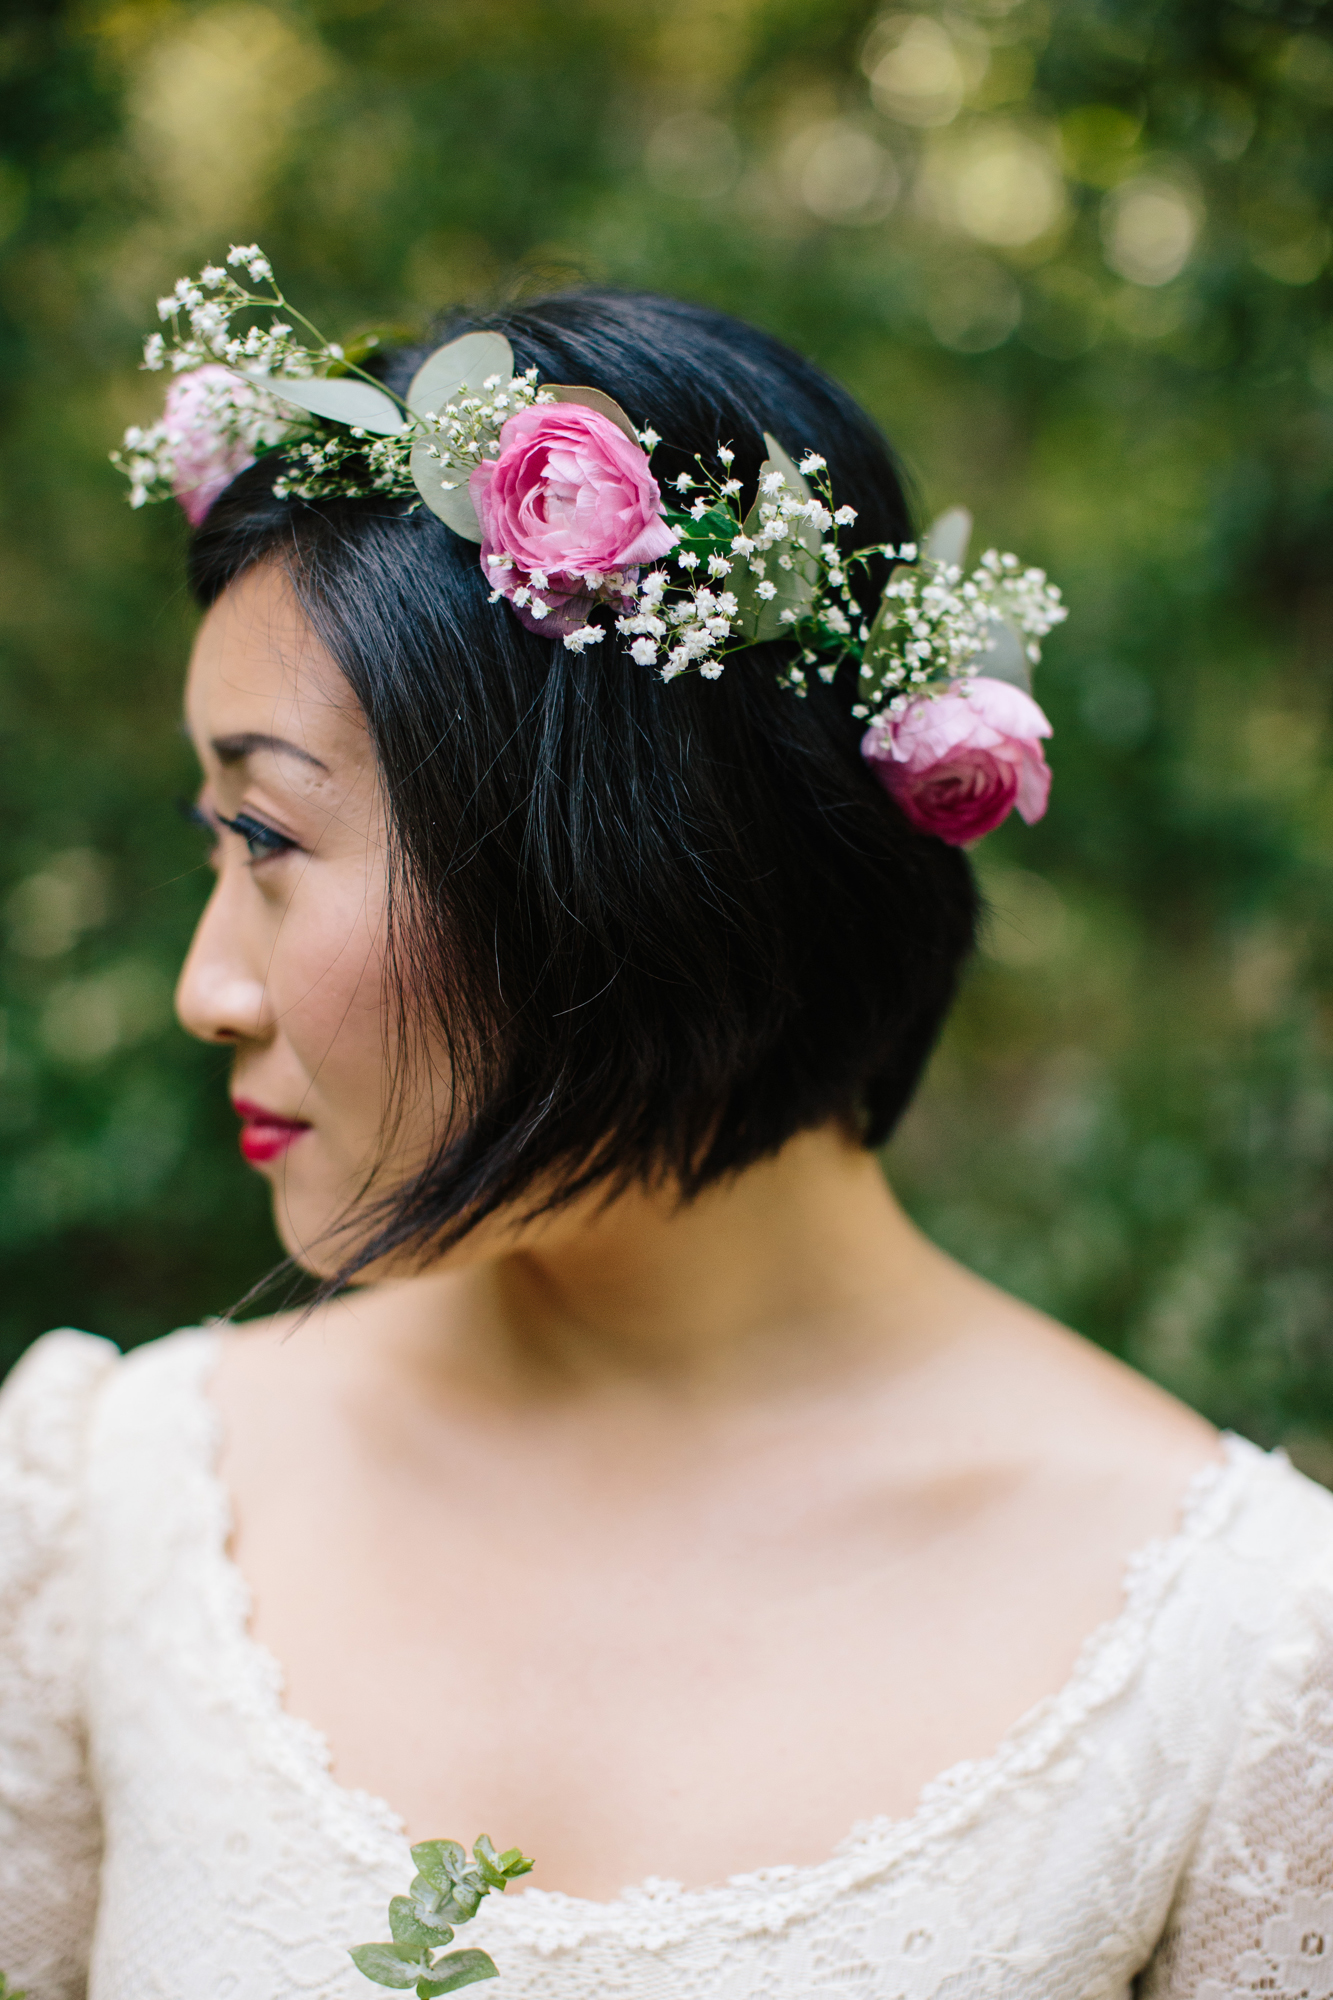 DIY Wedding Flower Crown